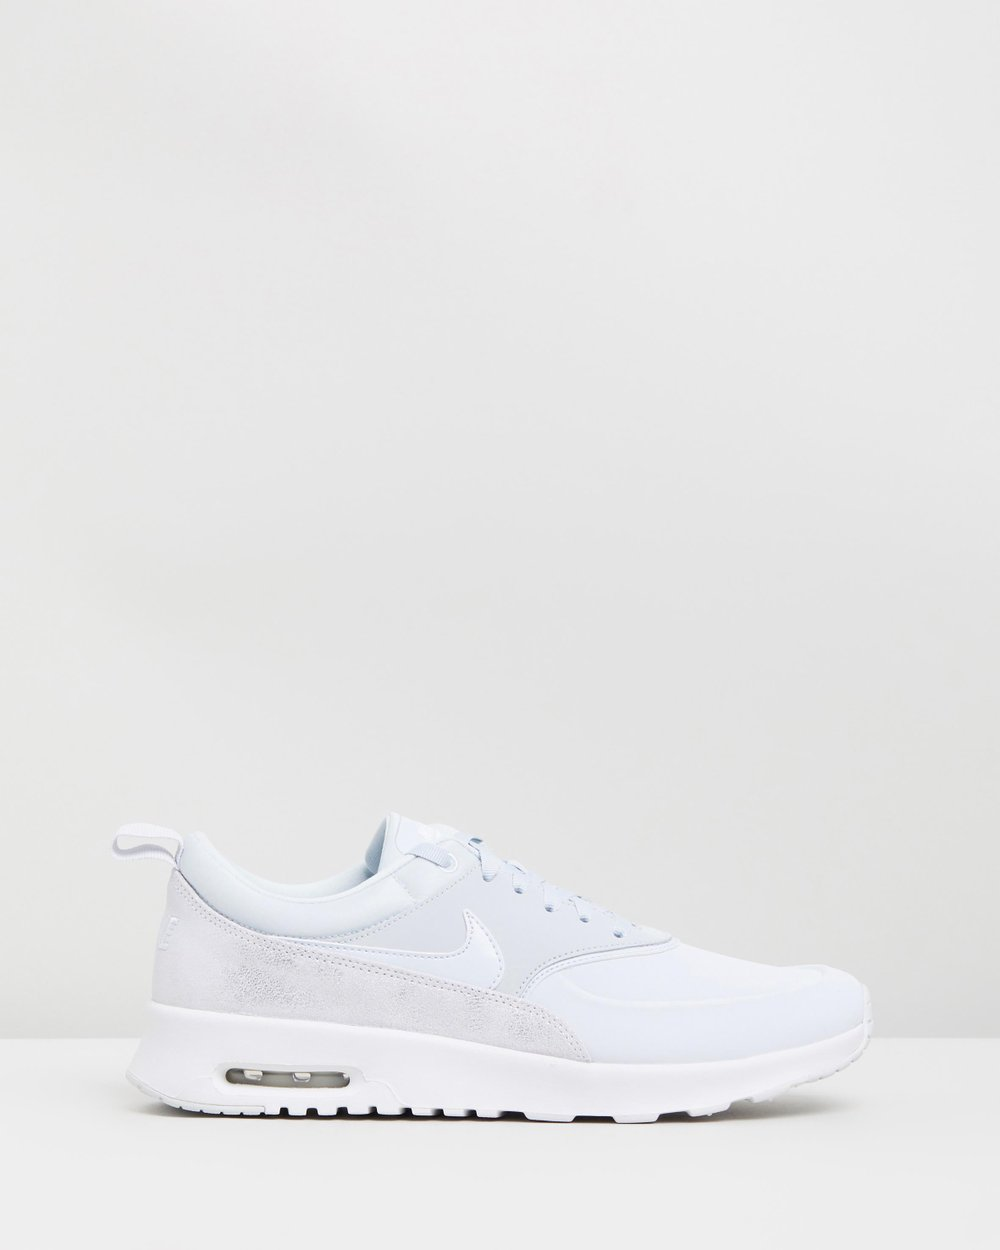 official photos 017b7 36401 Air Max Thea Premium - Women s by Nike Online   THE ICONIC   Australia